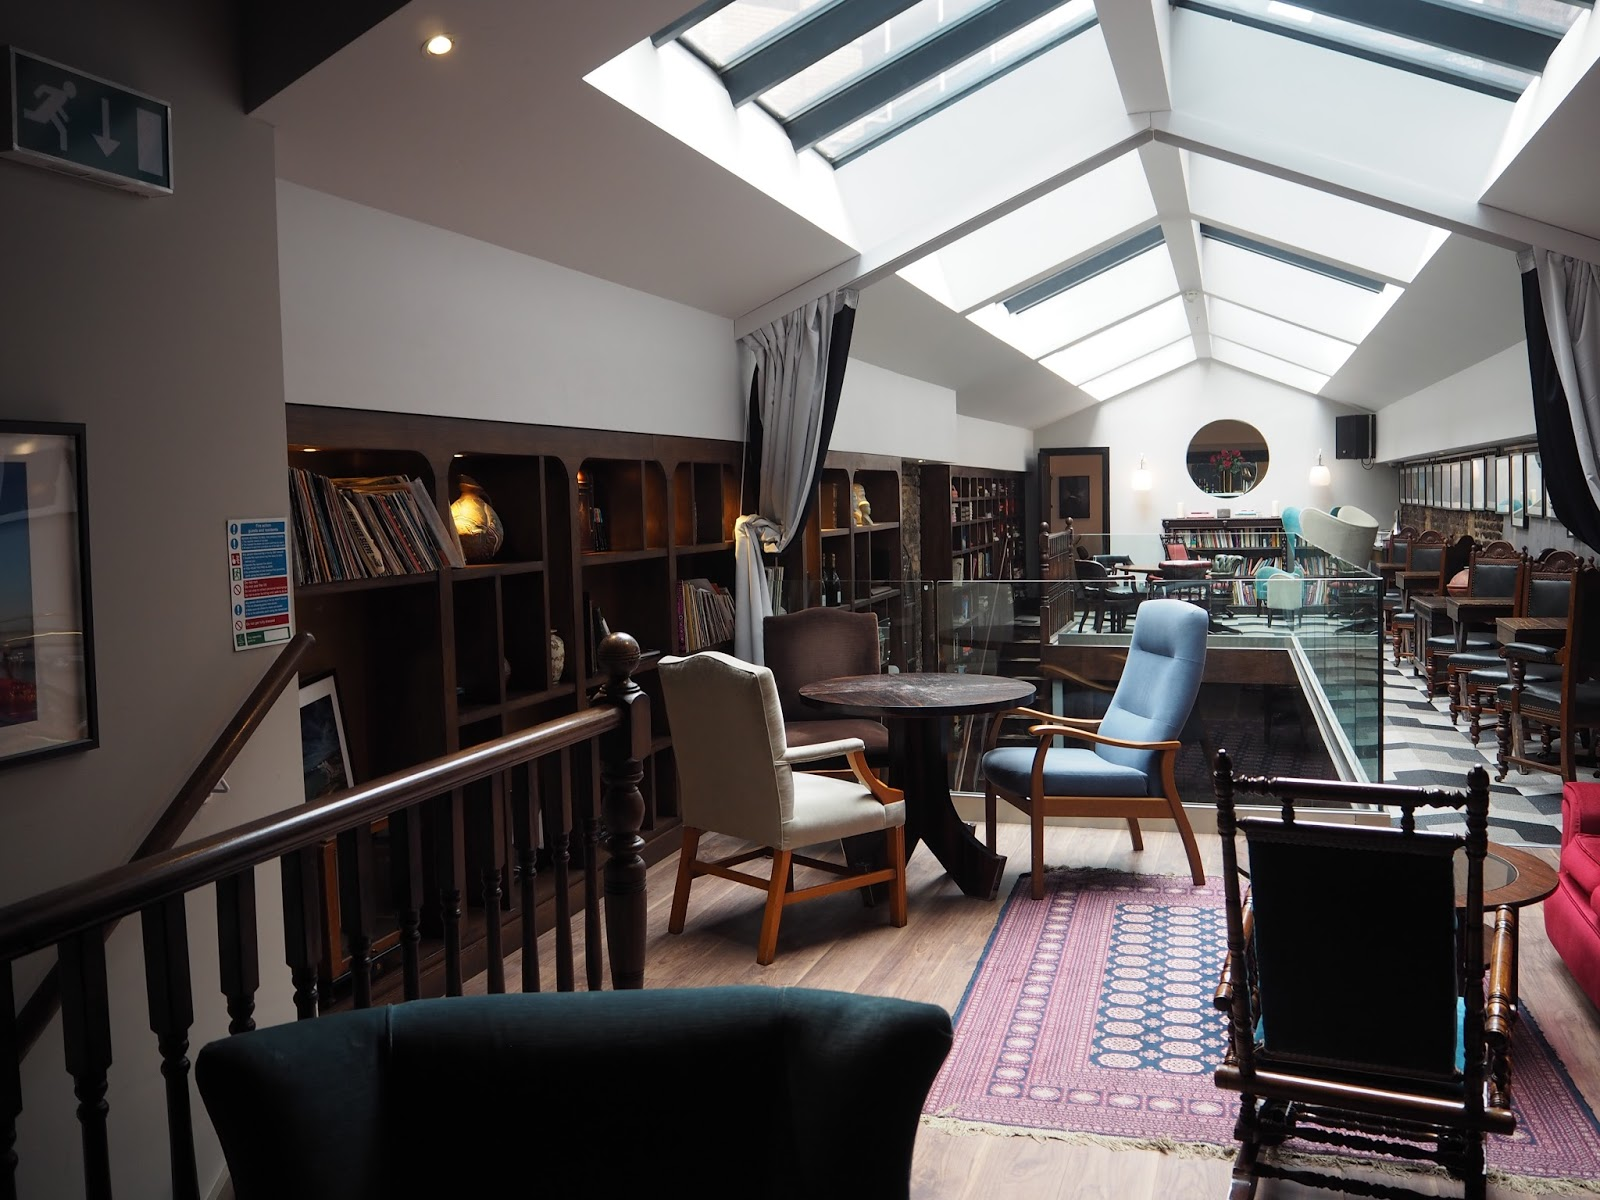 Library private members' club